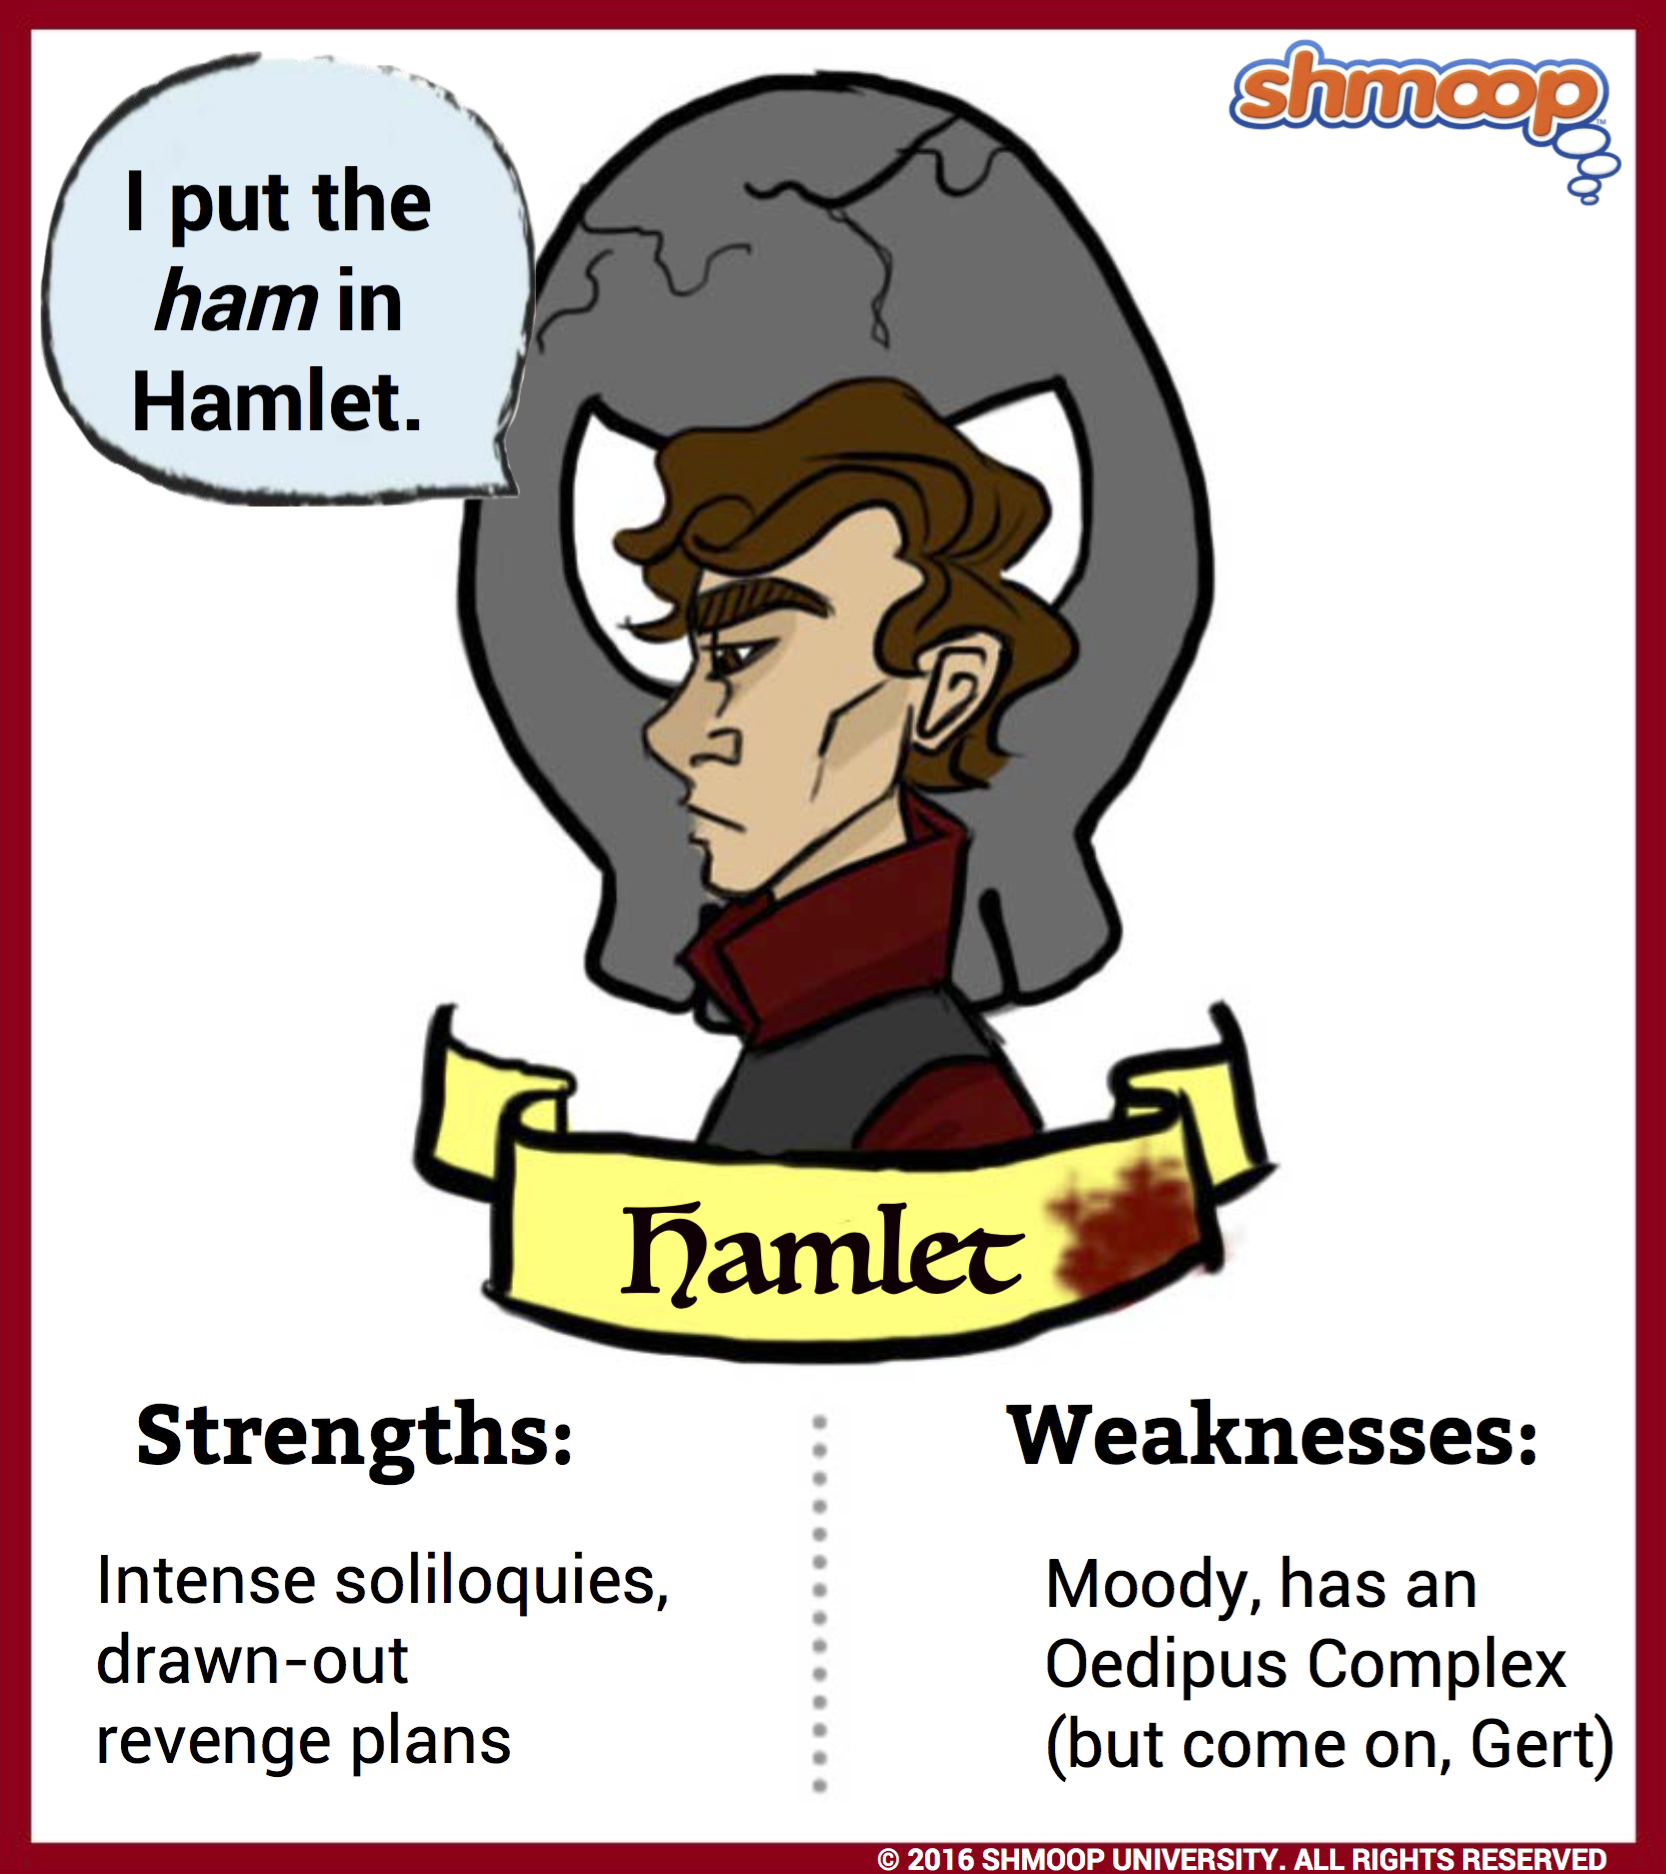 an essay on the tragedy of hamlet - hamlet: tragedy of failure william shakespeare's, hamlet is a tragedy of failure, the failure of a man placed in circumstances and faced to deal with them successfully shakespeare uses different techniques to develop the characters in hamlet.